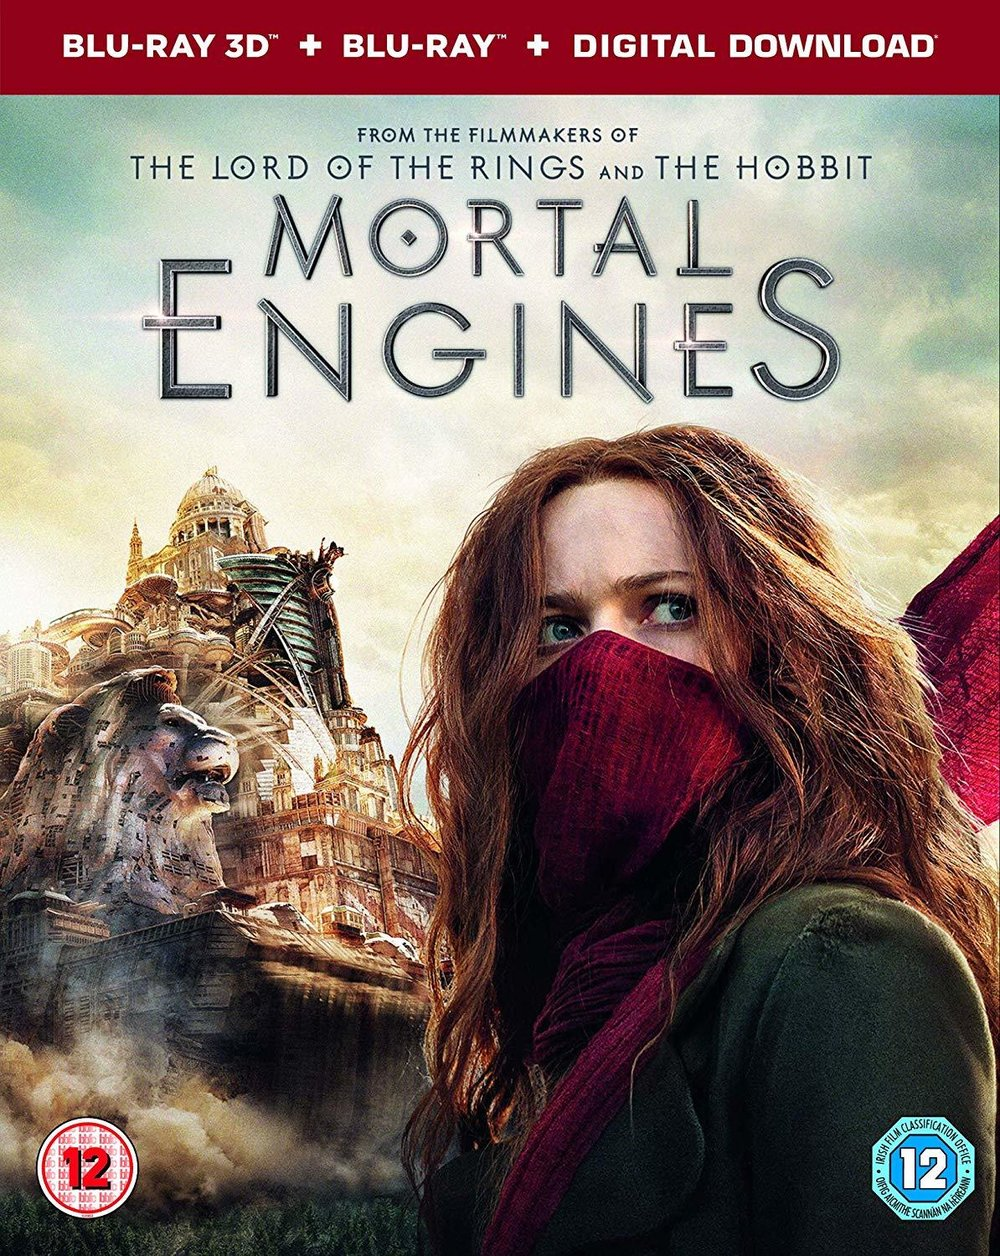 Mortal-engines-3d-movie.JPG